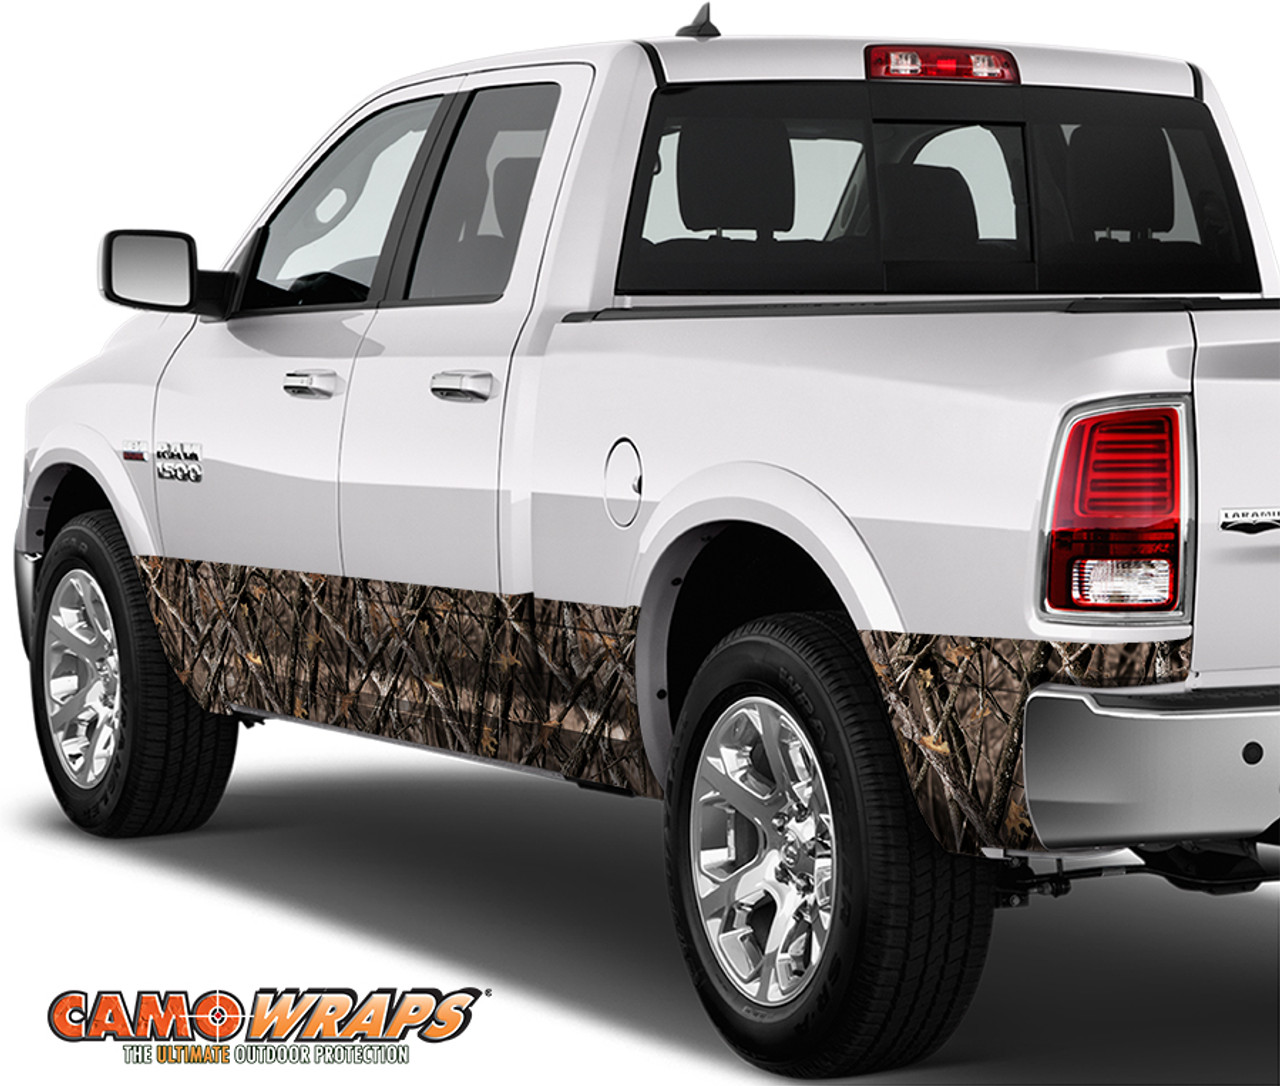 hight resolution of camowraps rocker panel wrap